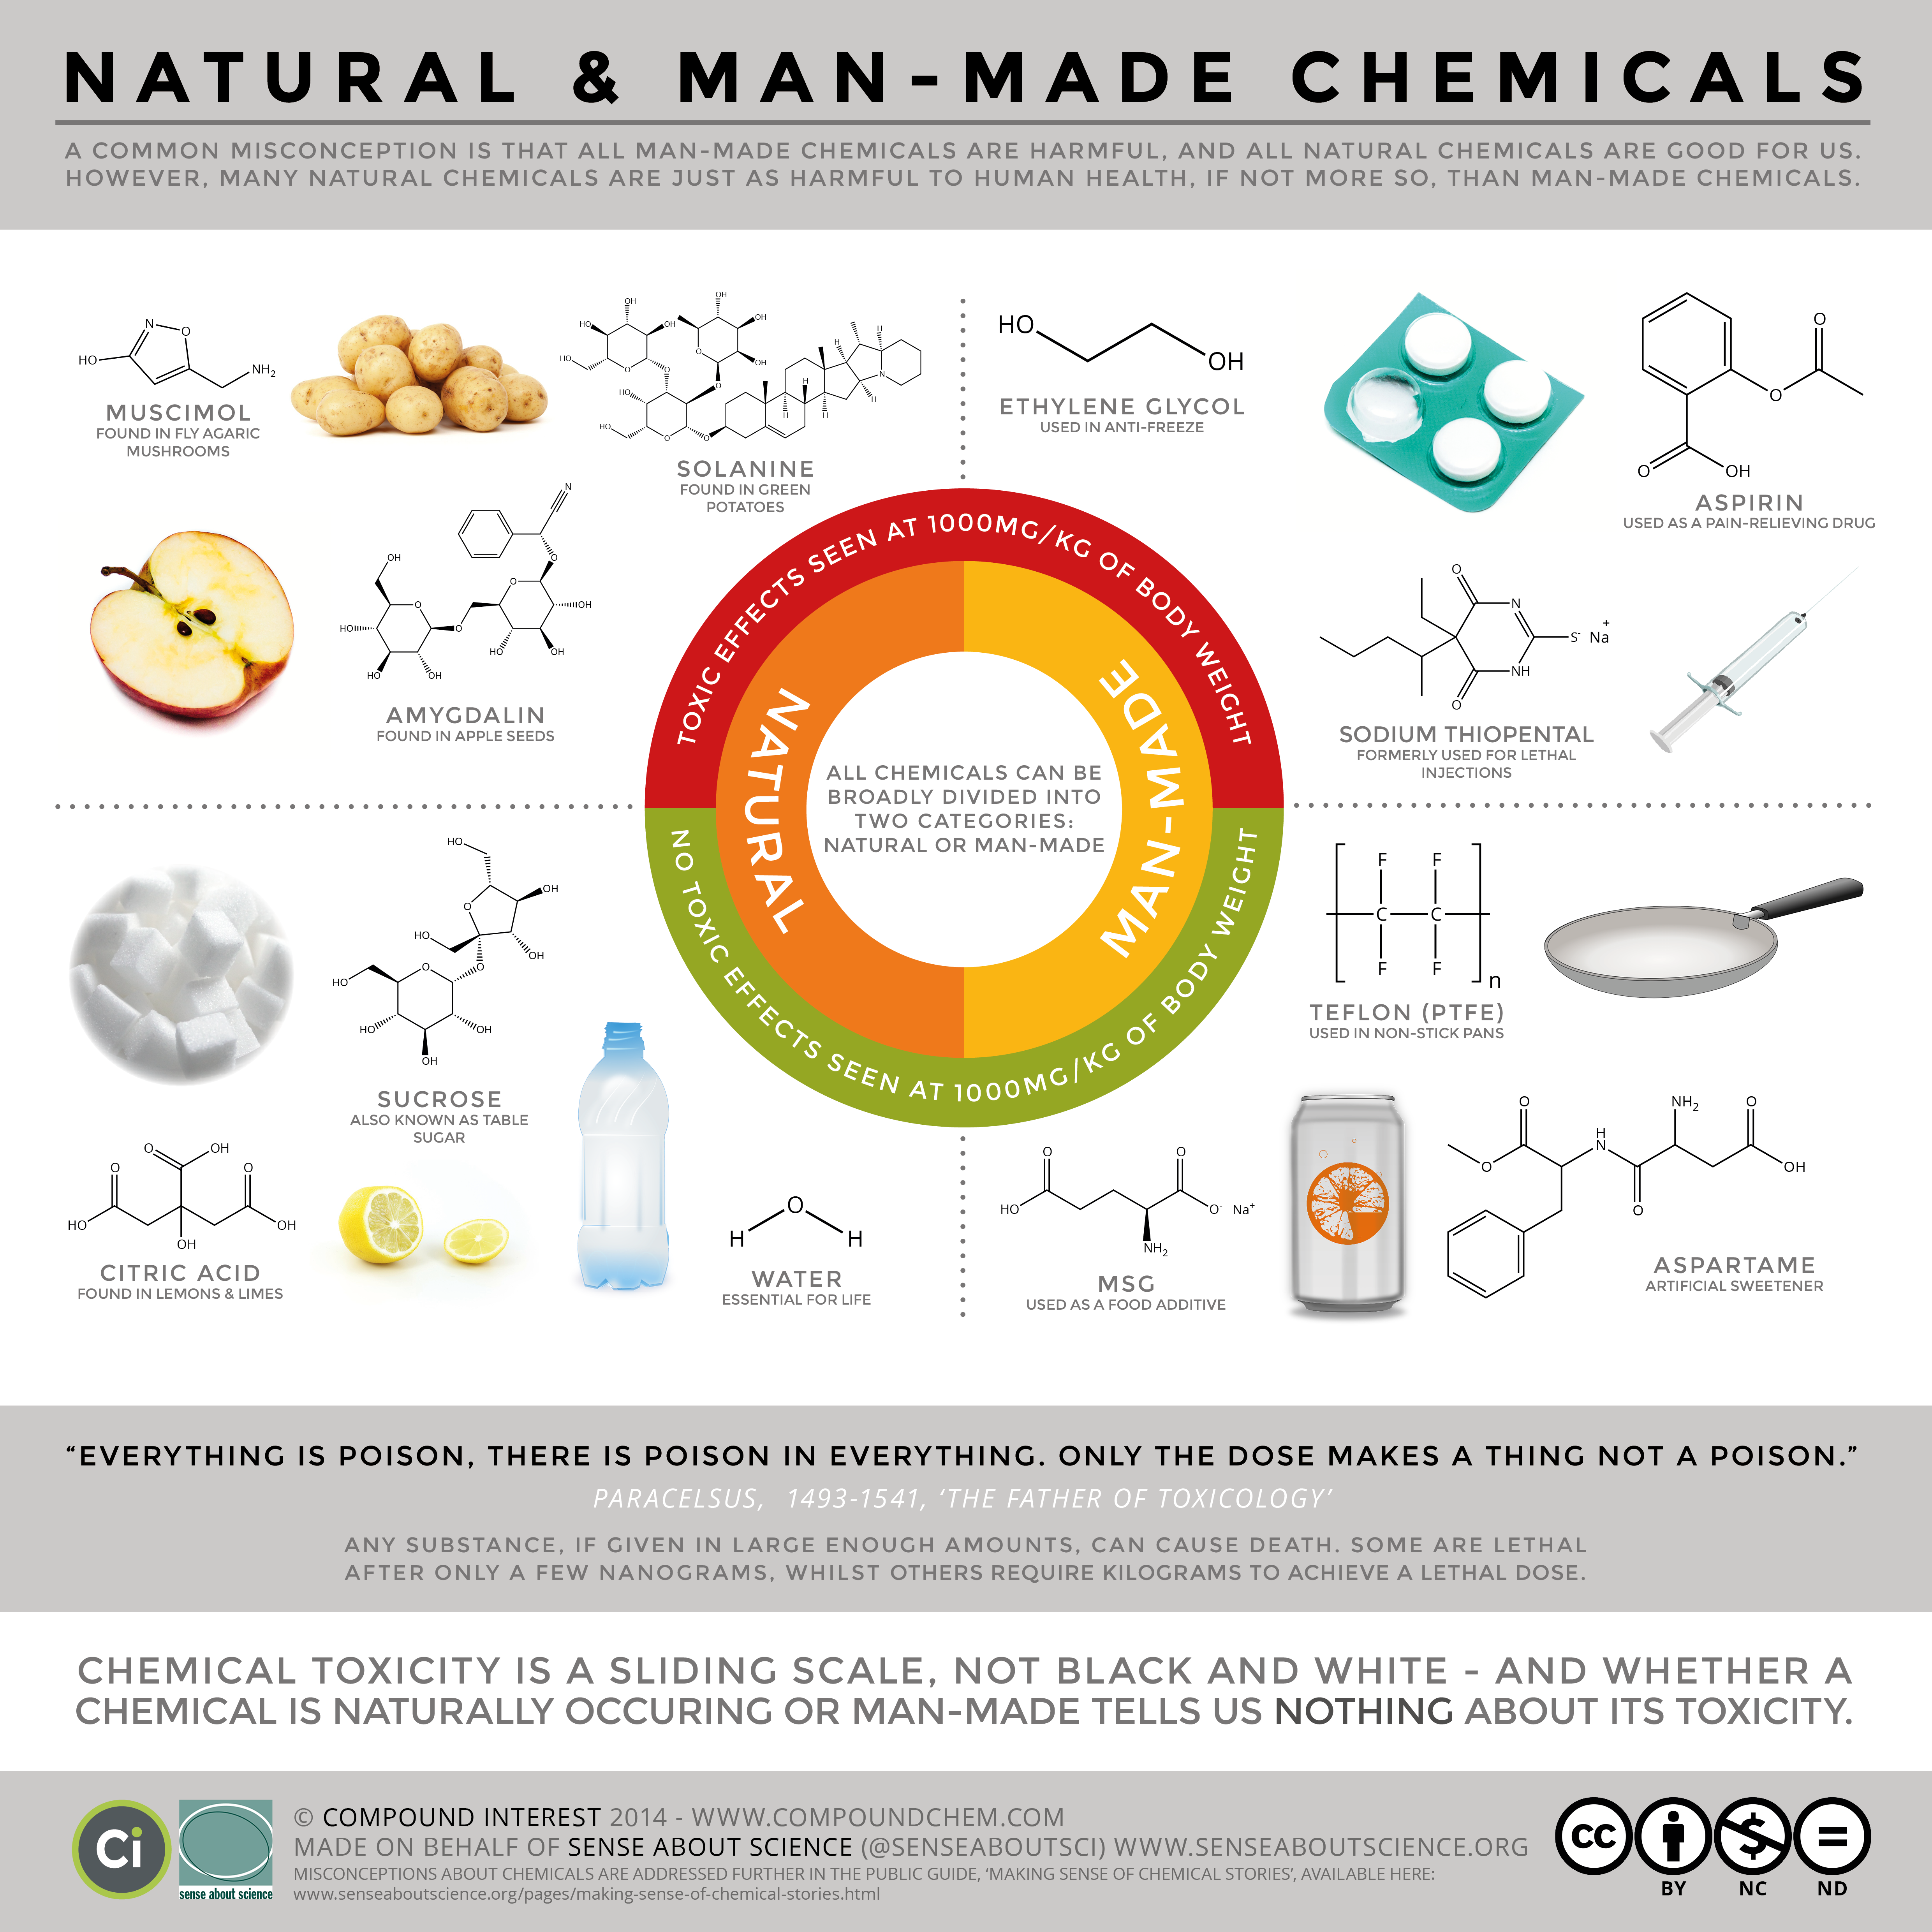 Natural Vs Man-Made Chemicals